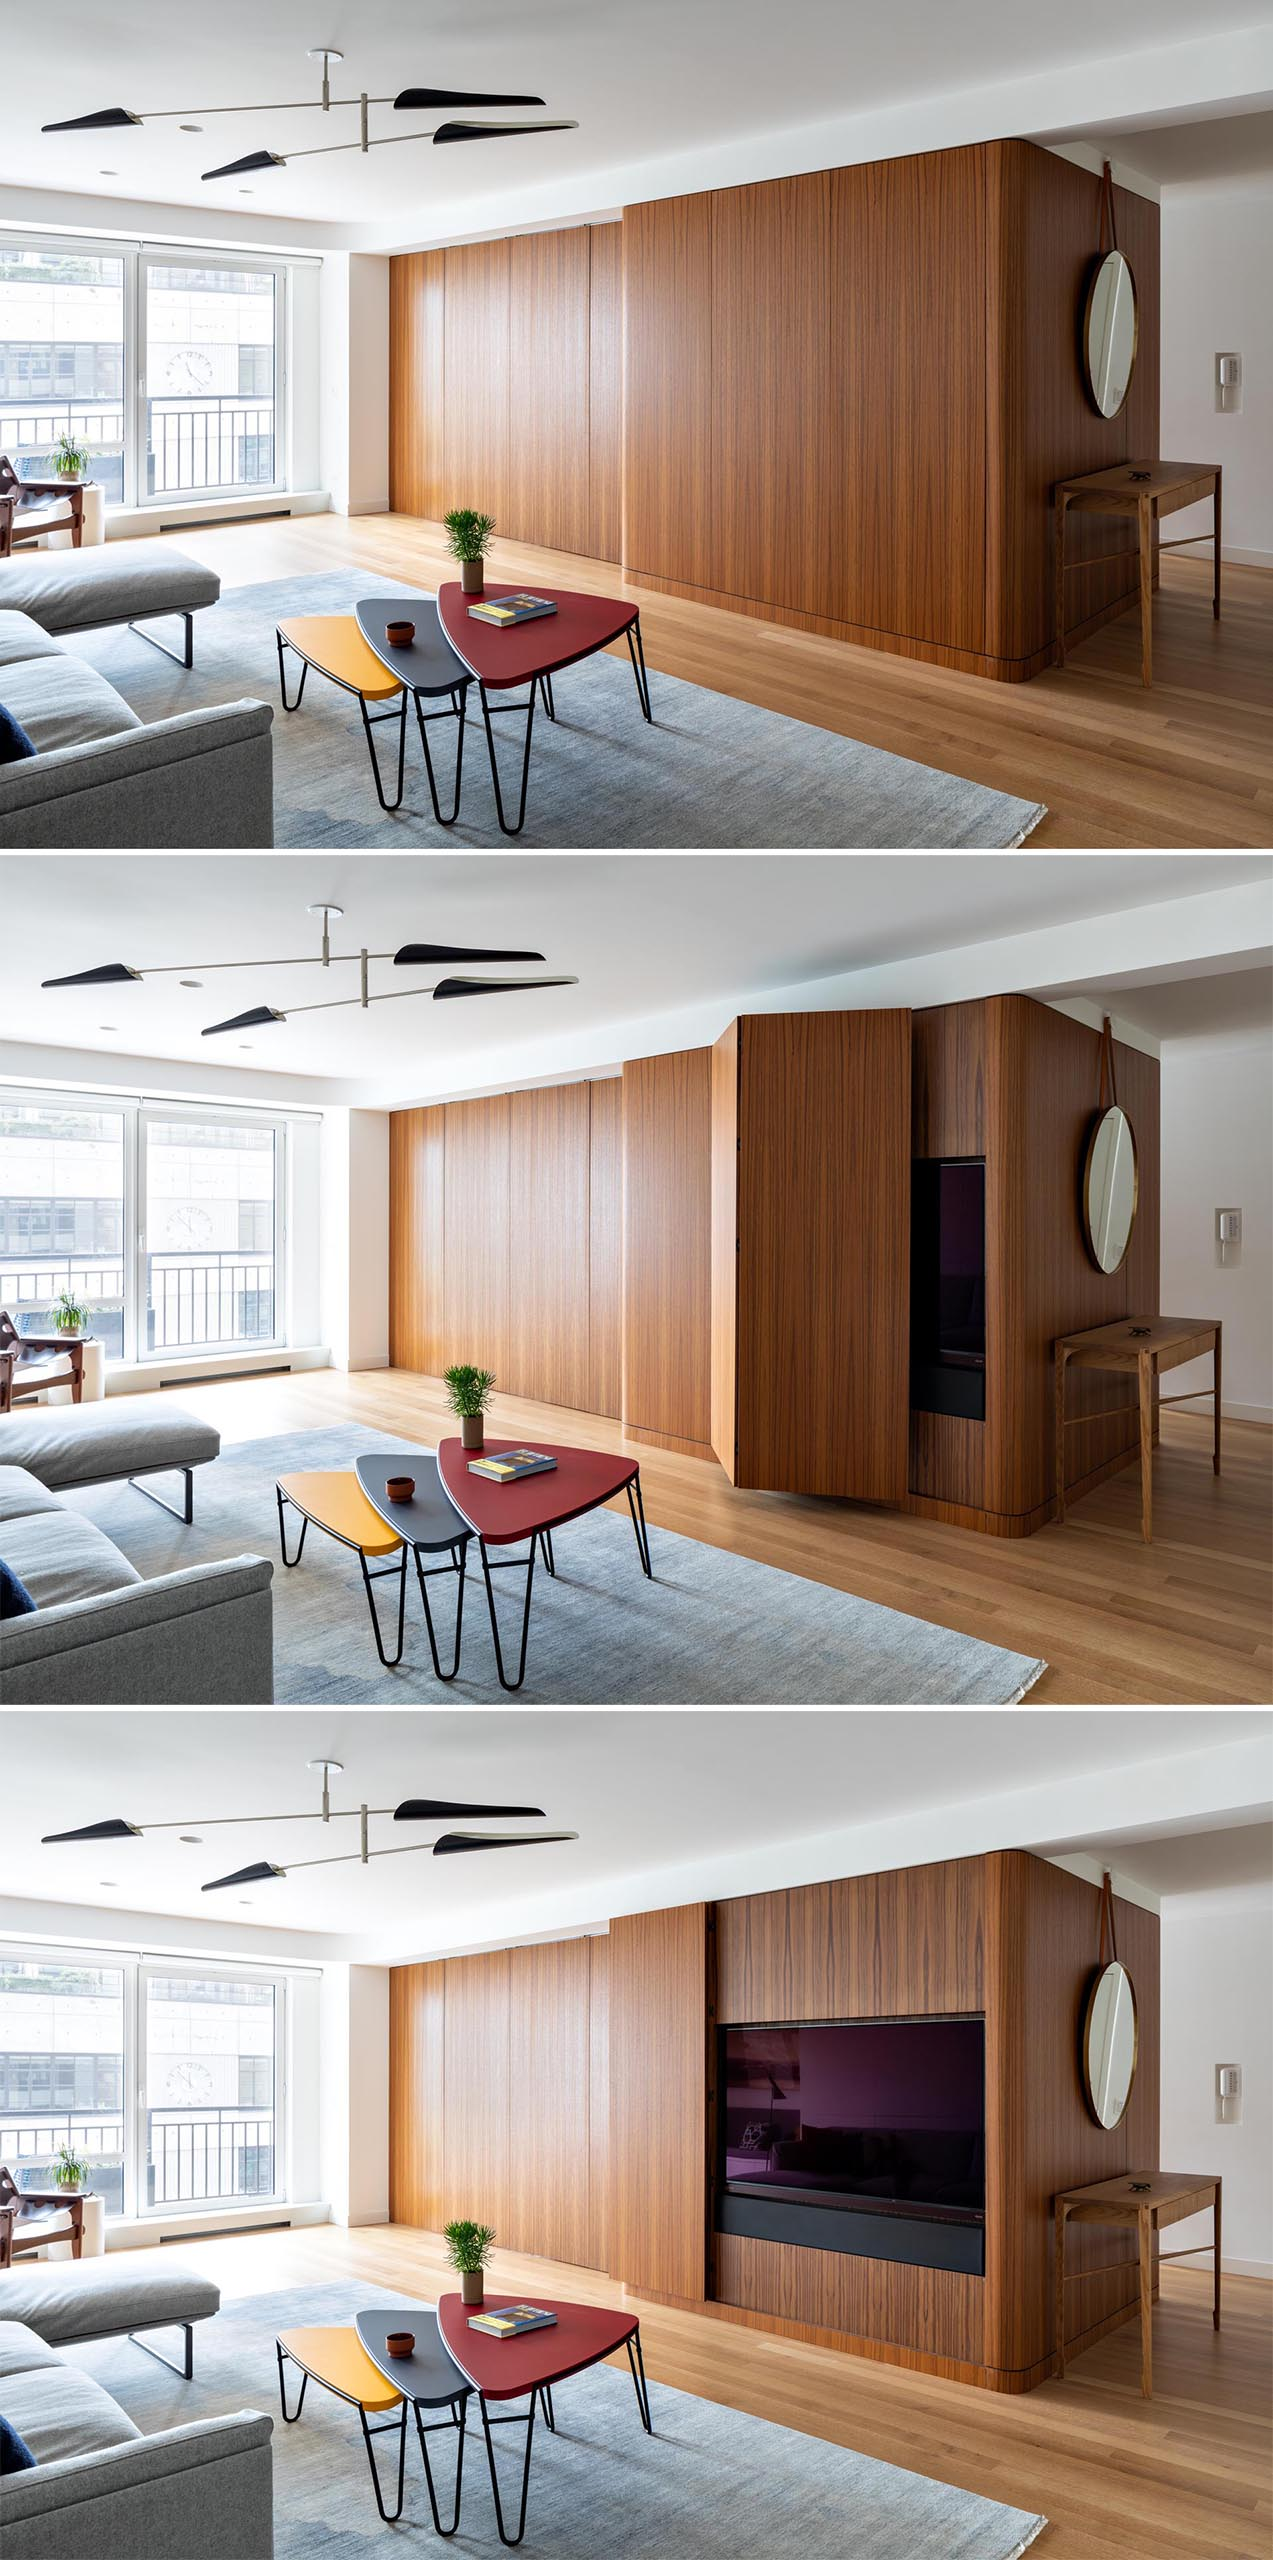 A modern apartment with a teak wall that opens to reveal the hidden TV.